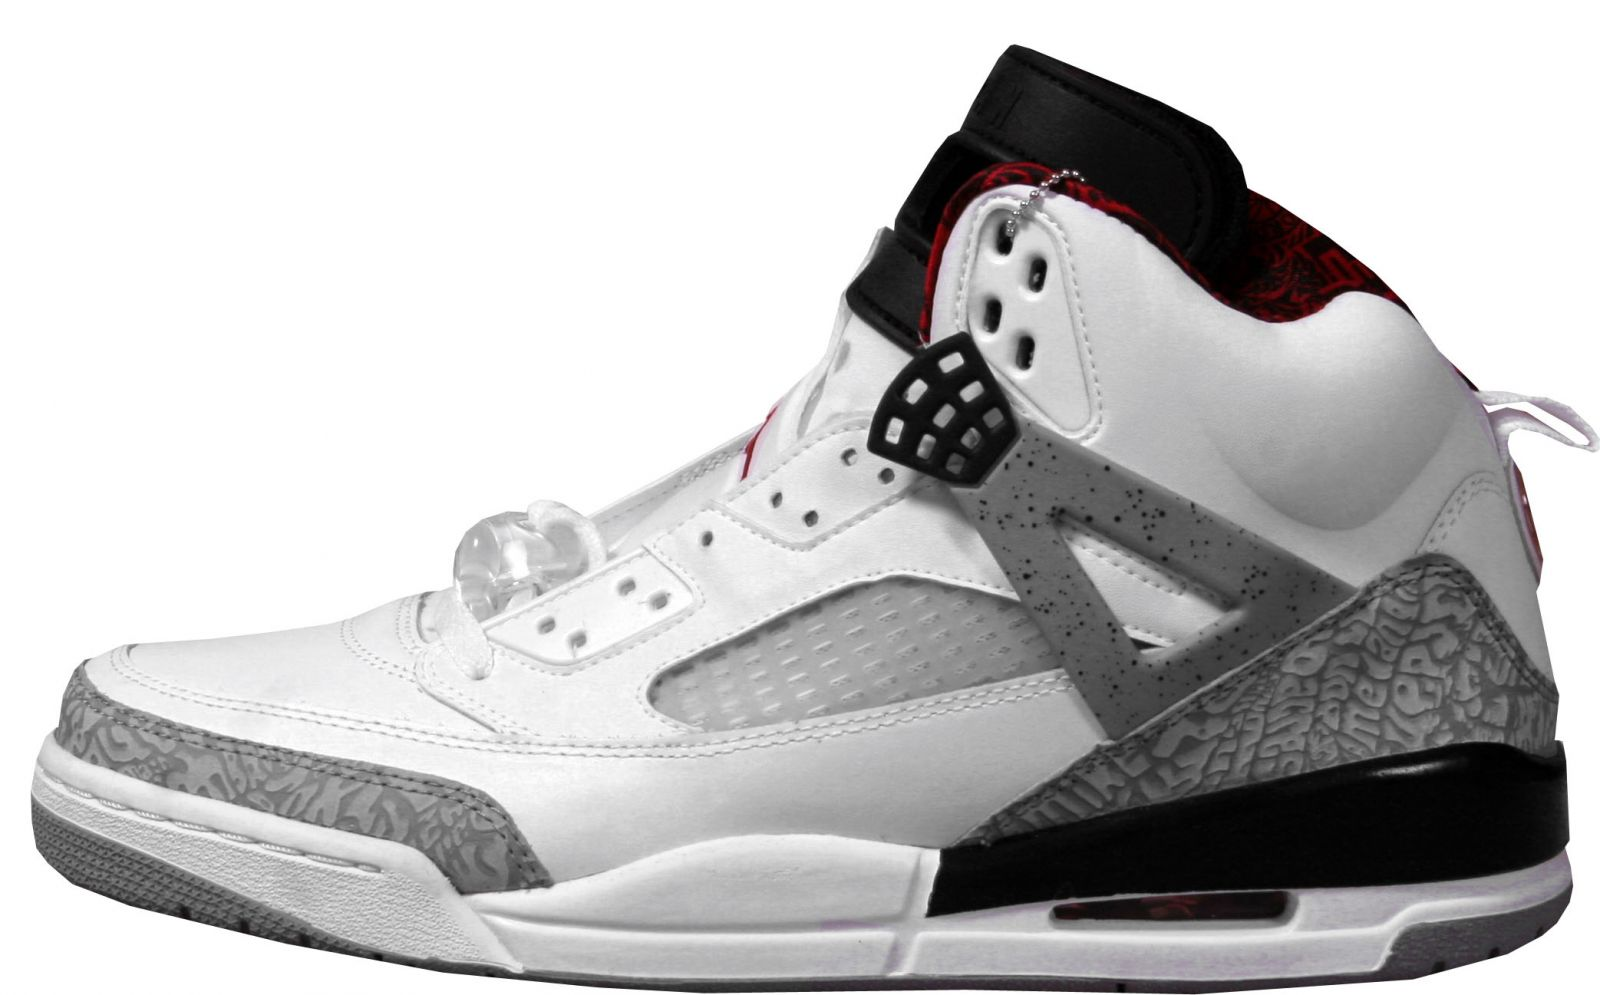 online retailer 640e8 f6ccd Is the Nike Zoom Vapor AJ3 the most valuable  cement  sneaker